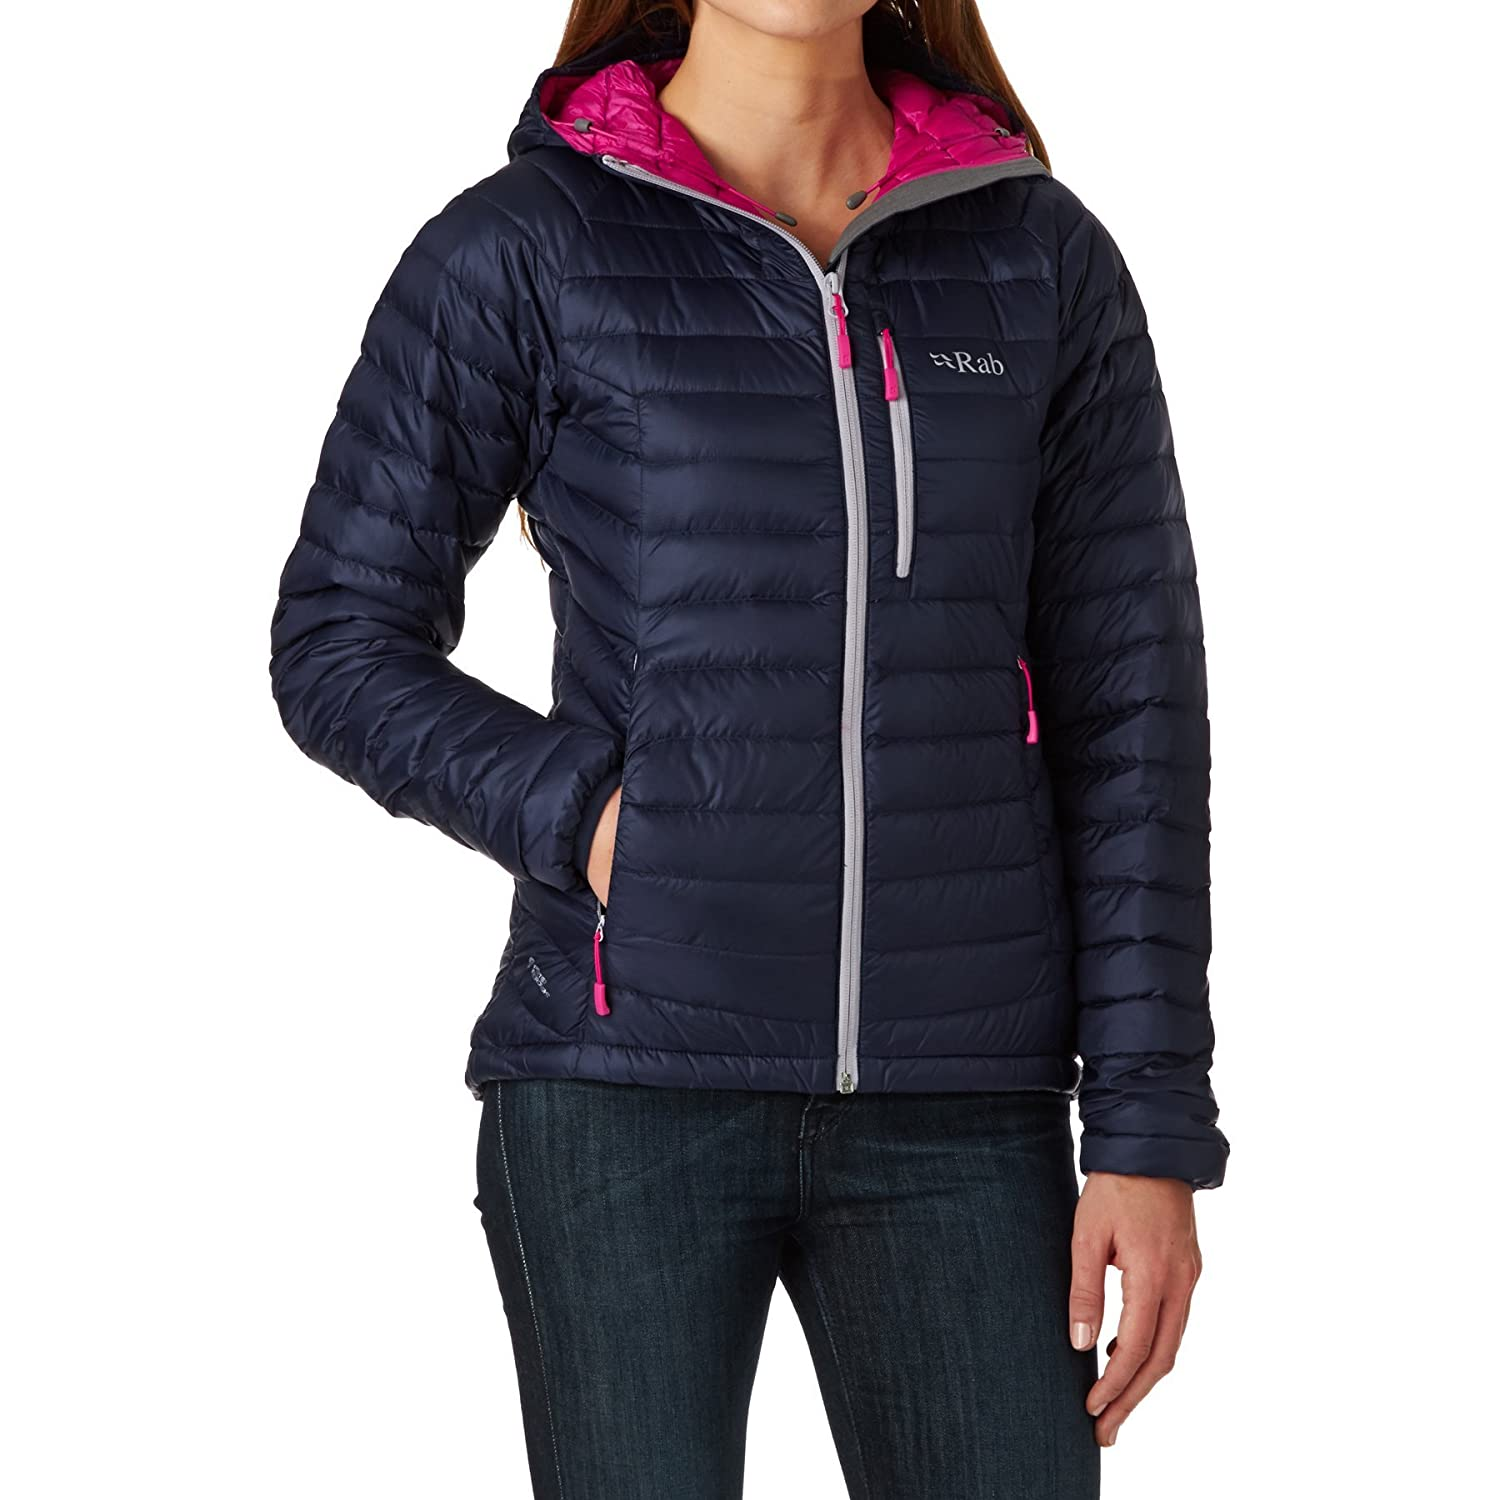 RAB WOMEN' S MICROLIGHT ALPINE JACKET